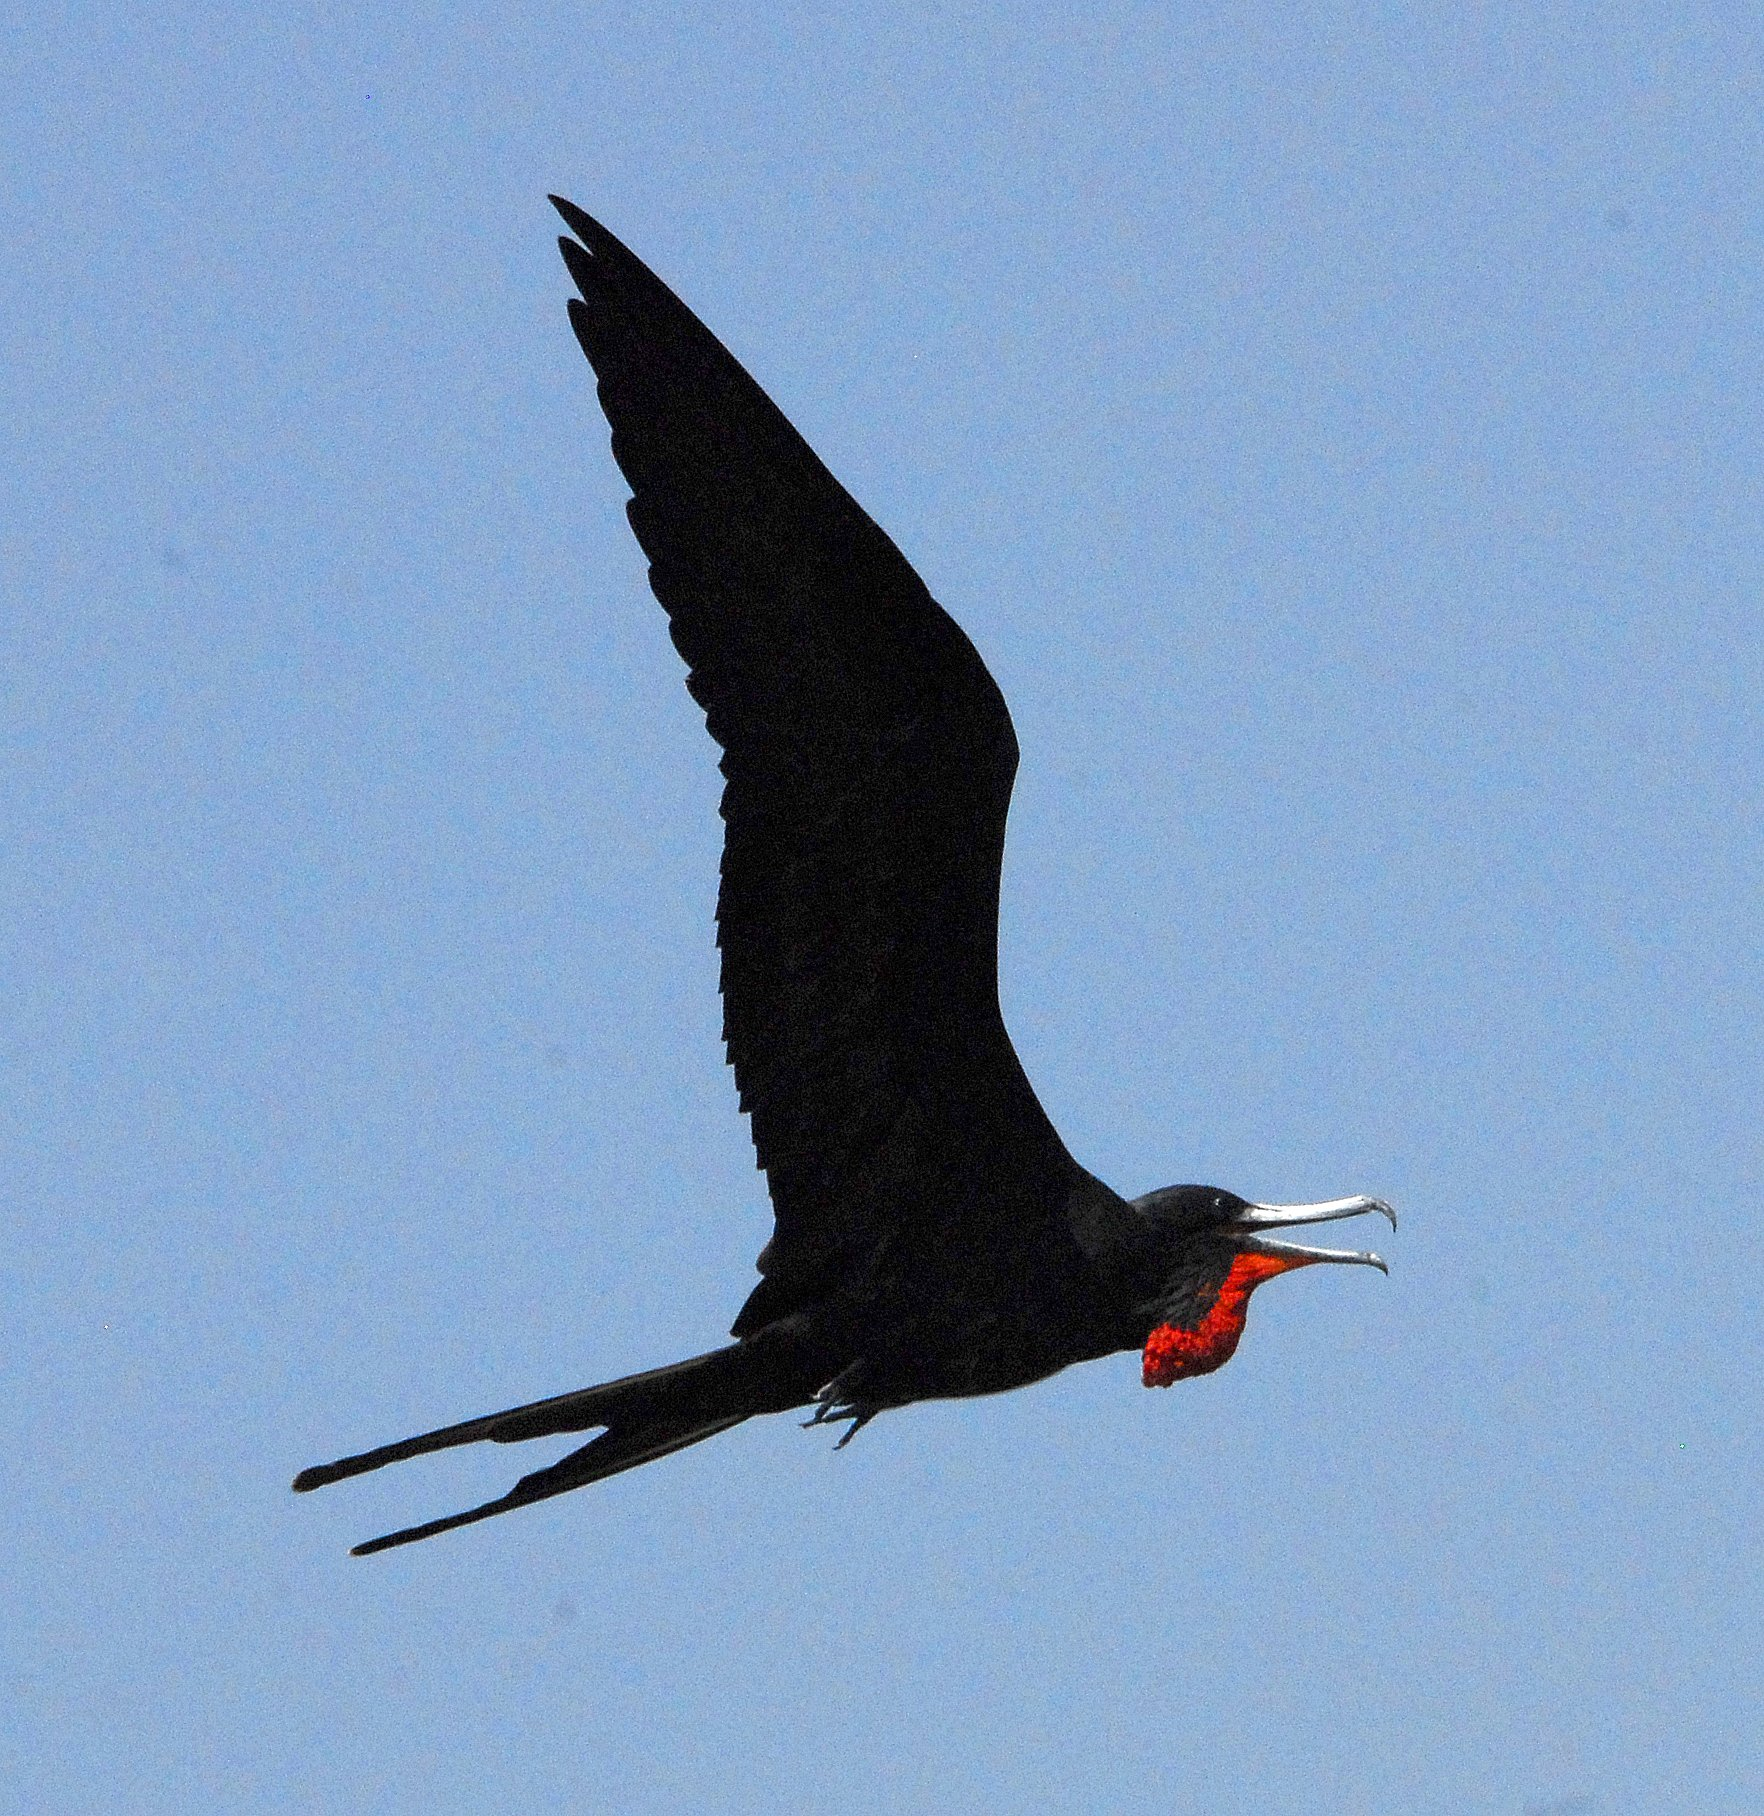 Frigate bird speed clipart freeuse library File:Magnificent Frigate Bird in Flight - Flickr - Andrea ... clipart freeuse library